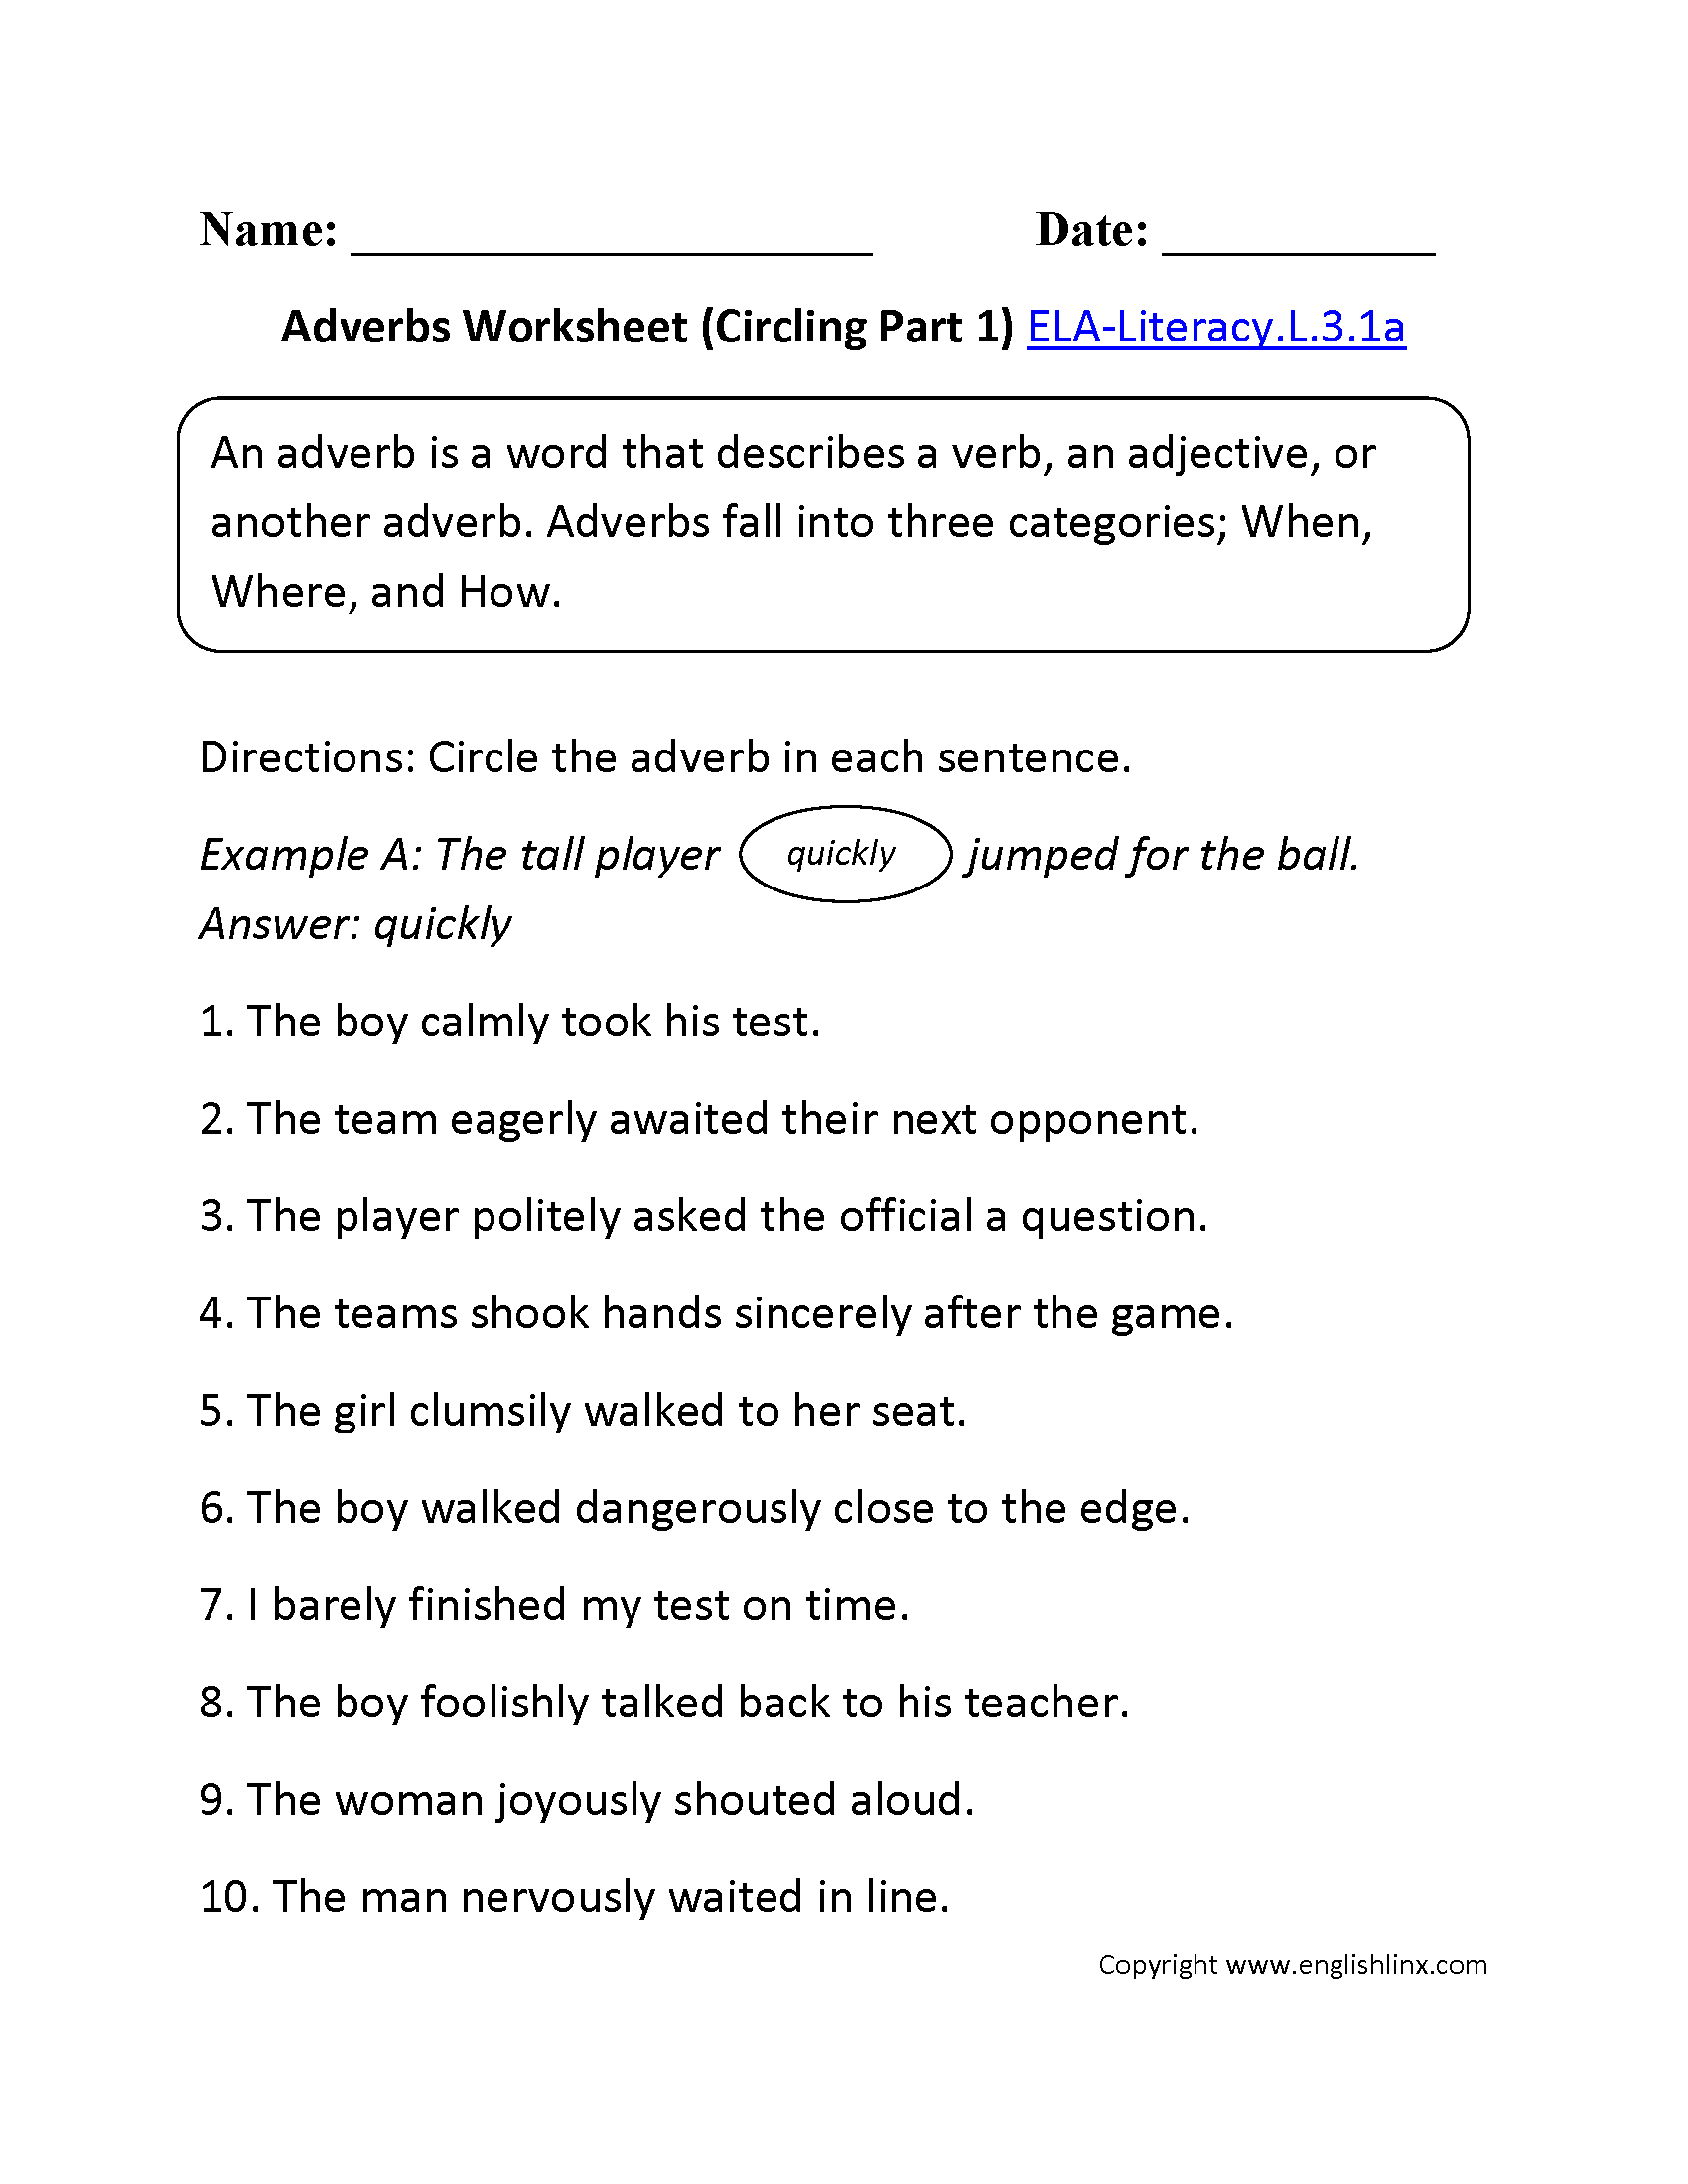 Worksheets Eighth Grade English Worksheets adverbs worksheet 1 ela literacy l 3 1a language english worksheets that are aligned to the grade common core standards for language